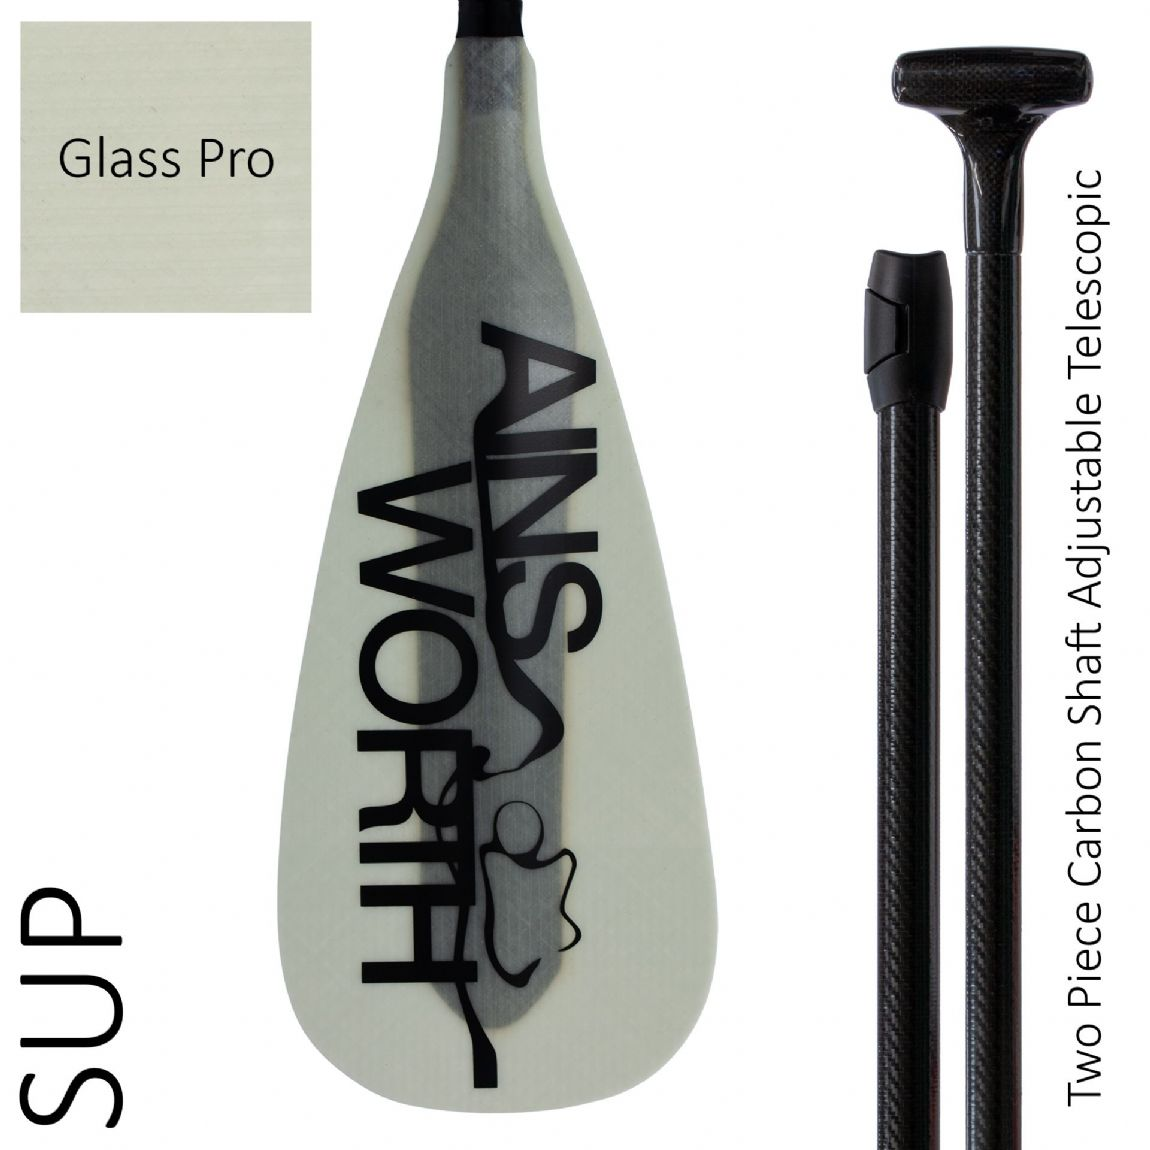 SUP (Glass Pro) Two Piece Carbon Telescopic